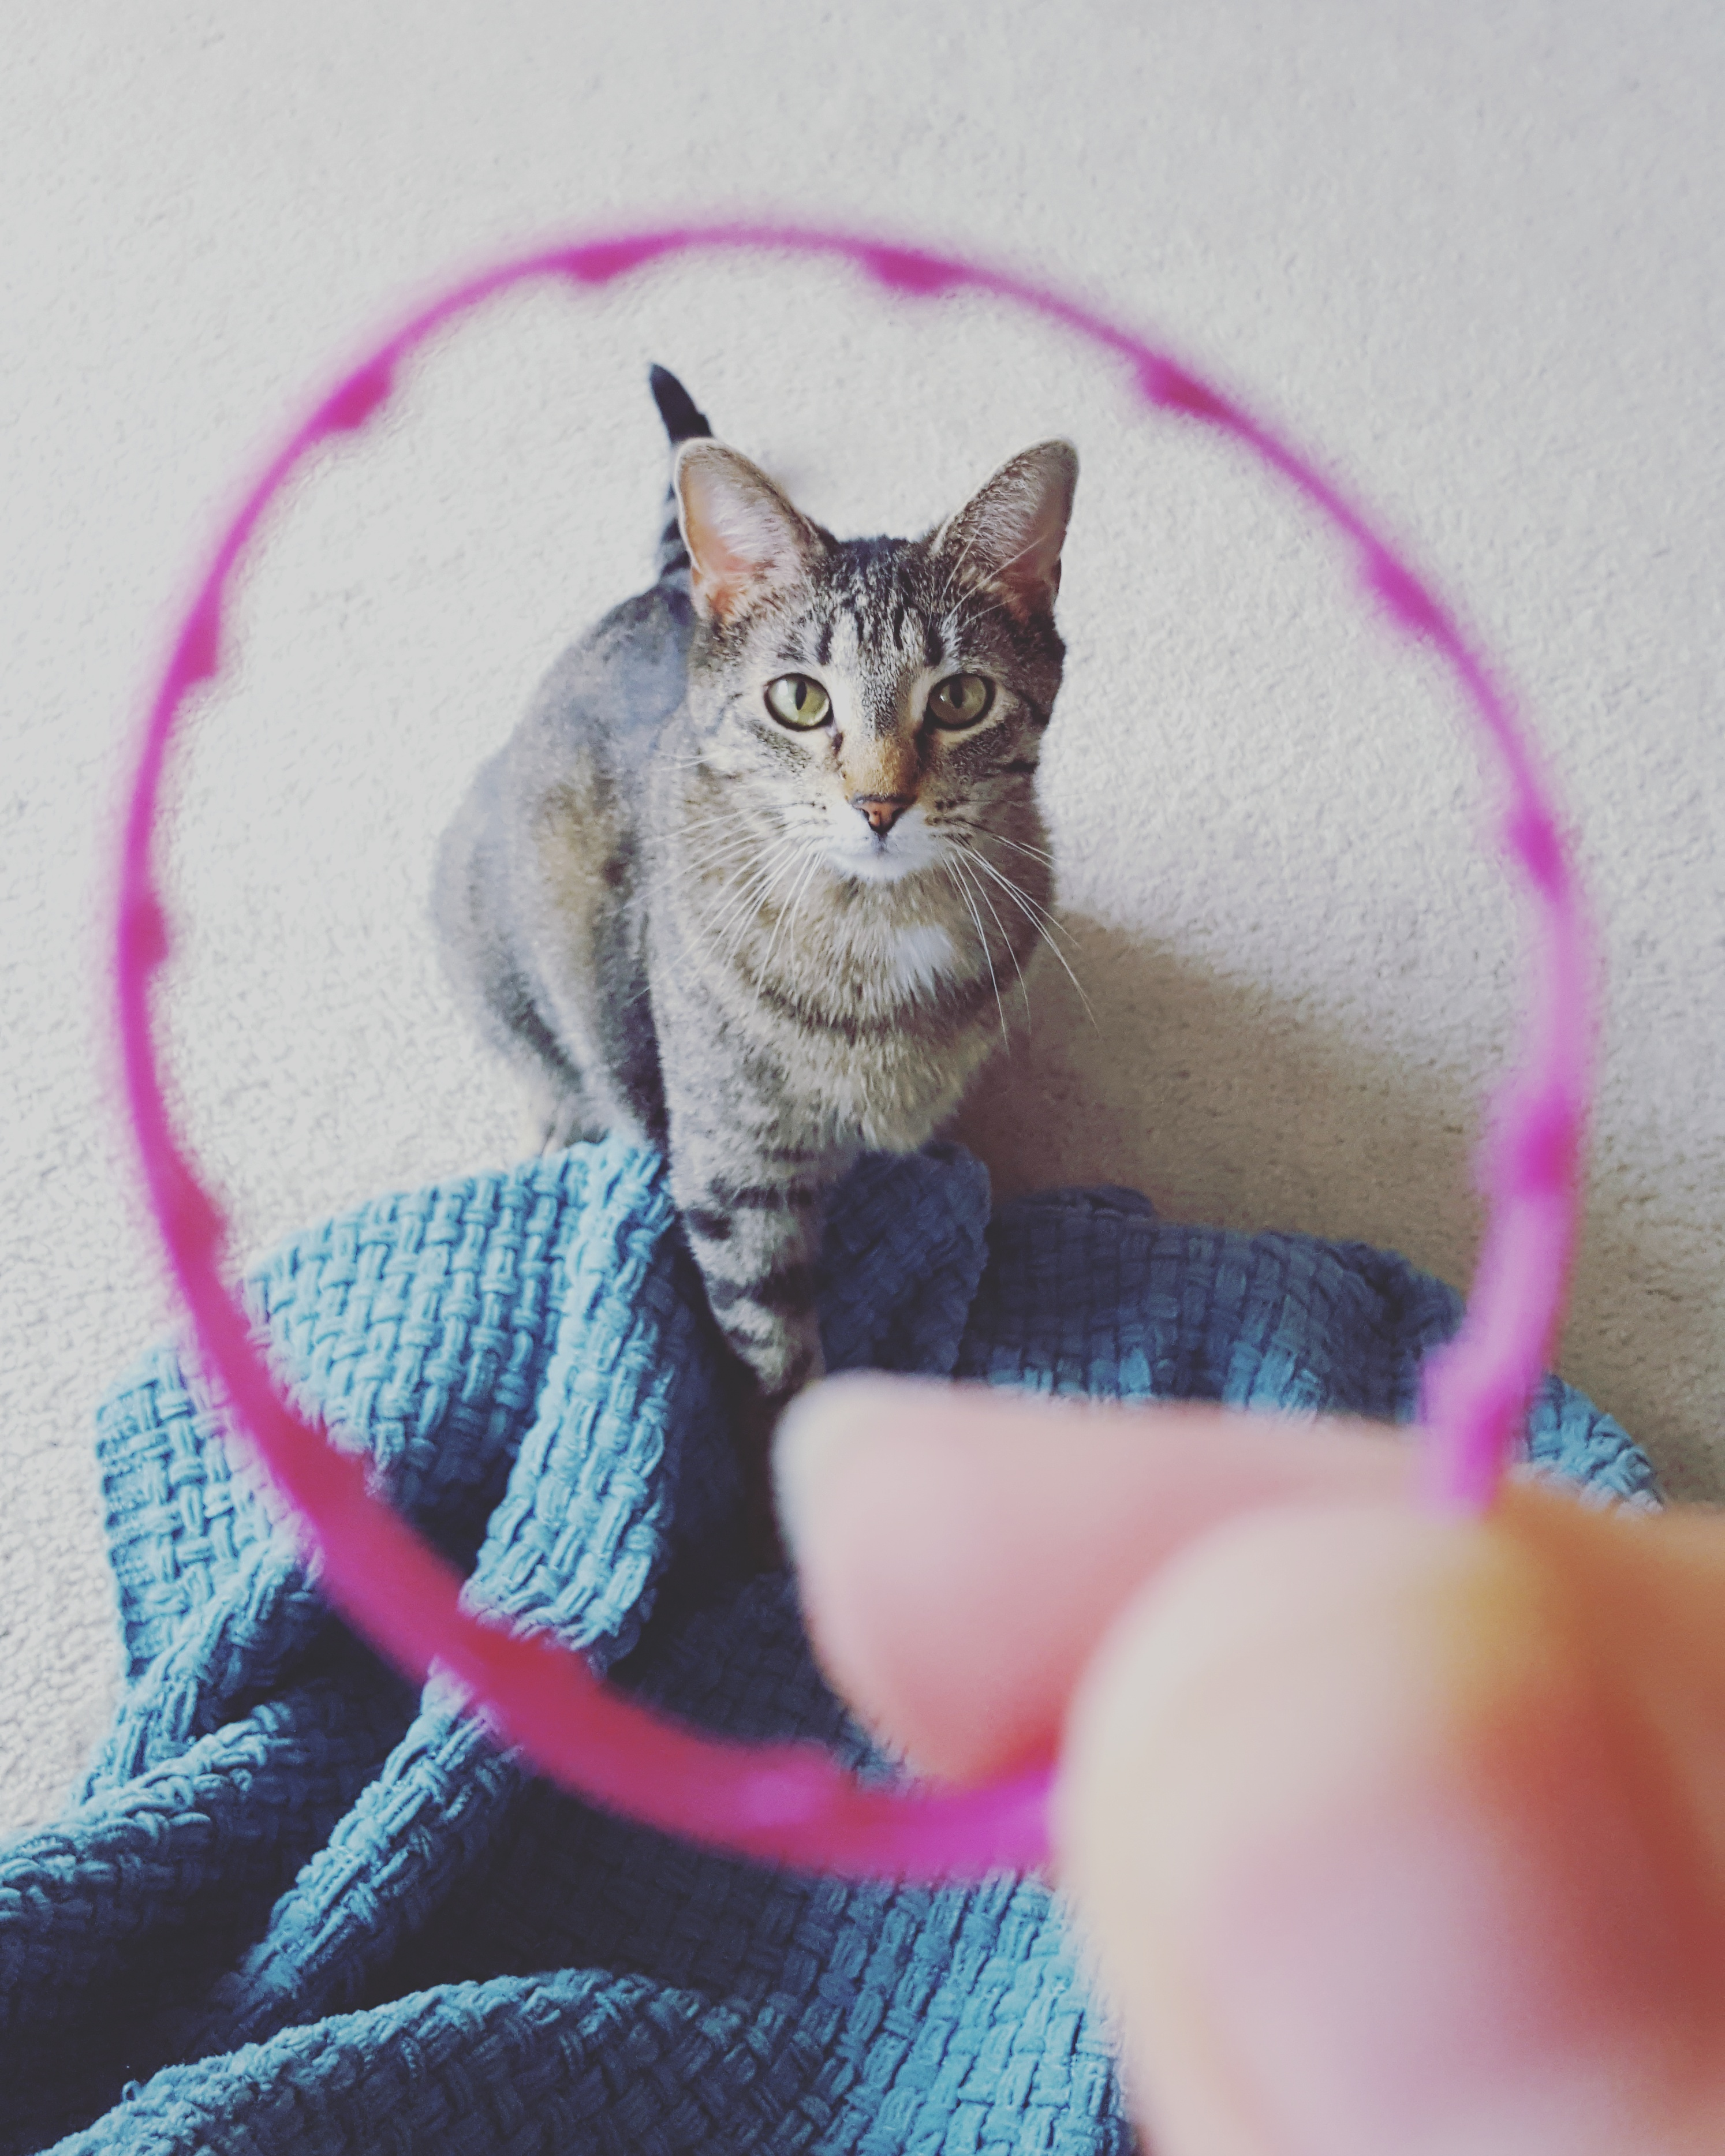 Nox, a black/grey/tan tabby tiger, is seen through an out-of-focus milk ring.